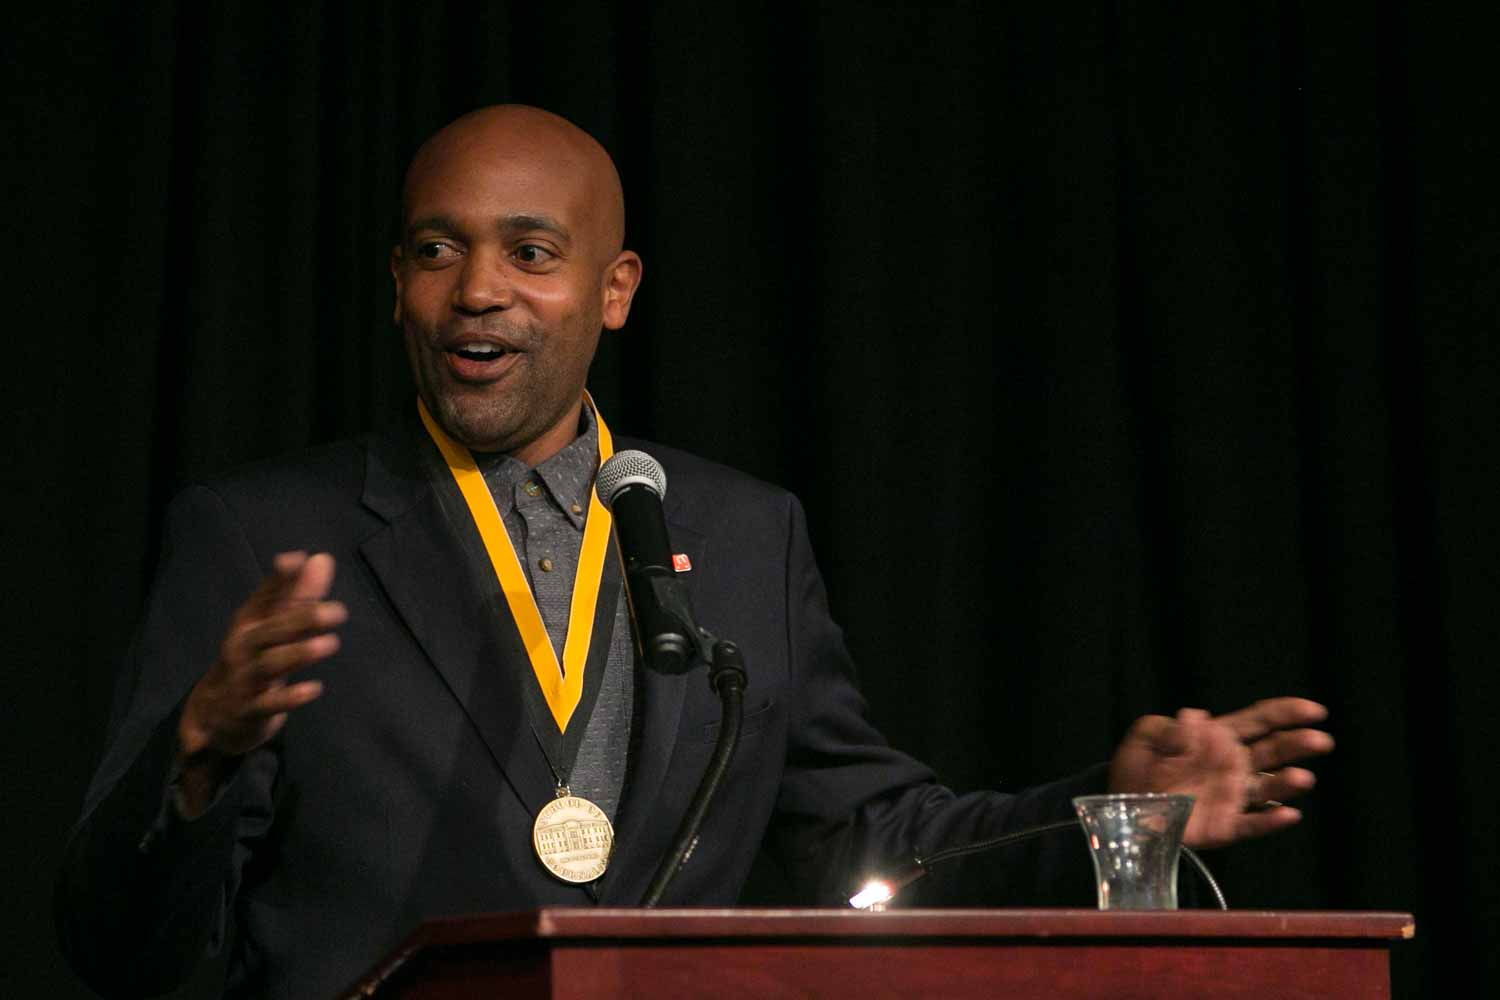 """Entrepreneur and activist Lincoln Stephens, BJ '03, delivers his acceptance speech after receiving an honor medal. In November 2008, Stephens decided to quit his job as an advertising account management executive to pursue his passion for mentorship and co-founded a nonprofit organization called The Marcus Graham Project. The organization, which is focused on bringing more diversity to the advertising industry through mentorship, exposure and career development, has been featured in Advertising Age, Black Enterprise magazine, Savoy magazine, and on CNN and NBC. Additionally, Stephens was named one of Advertising Age's """"40 under 40″ marketing leaders in 2013 and previously was featured in Ebony magazine as one of the top entrepreneurs in the country under the age of 34."""